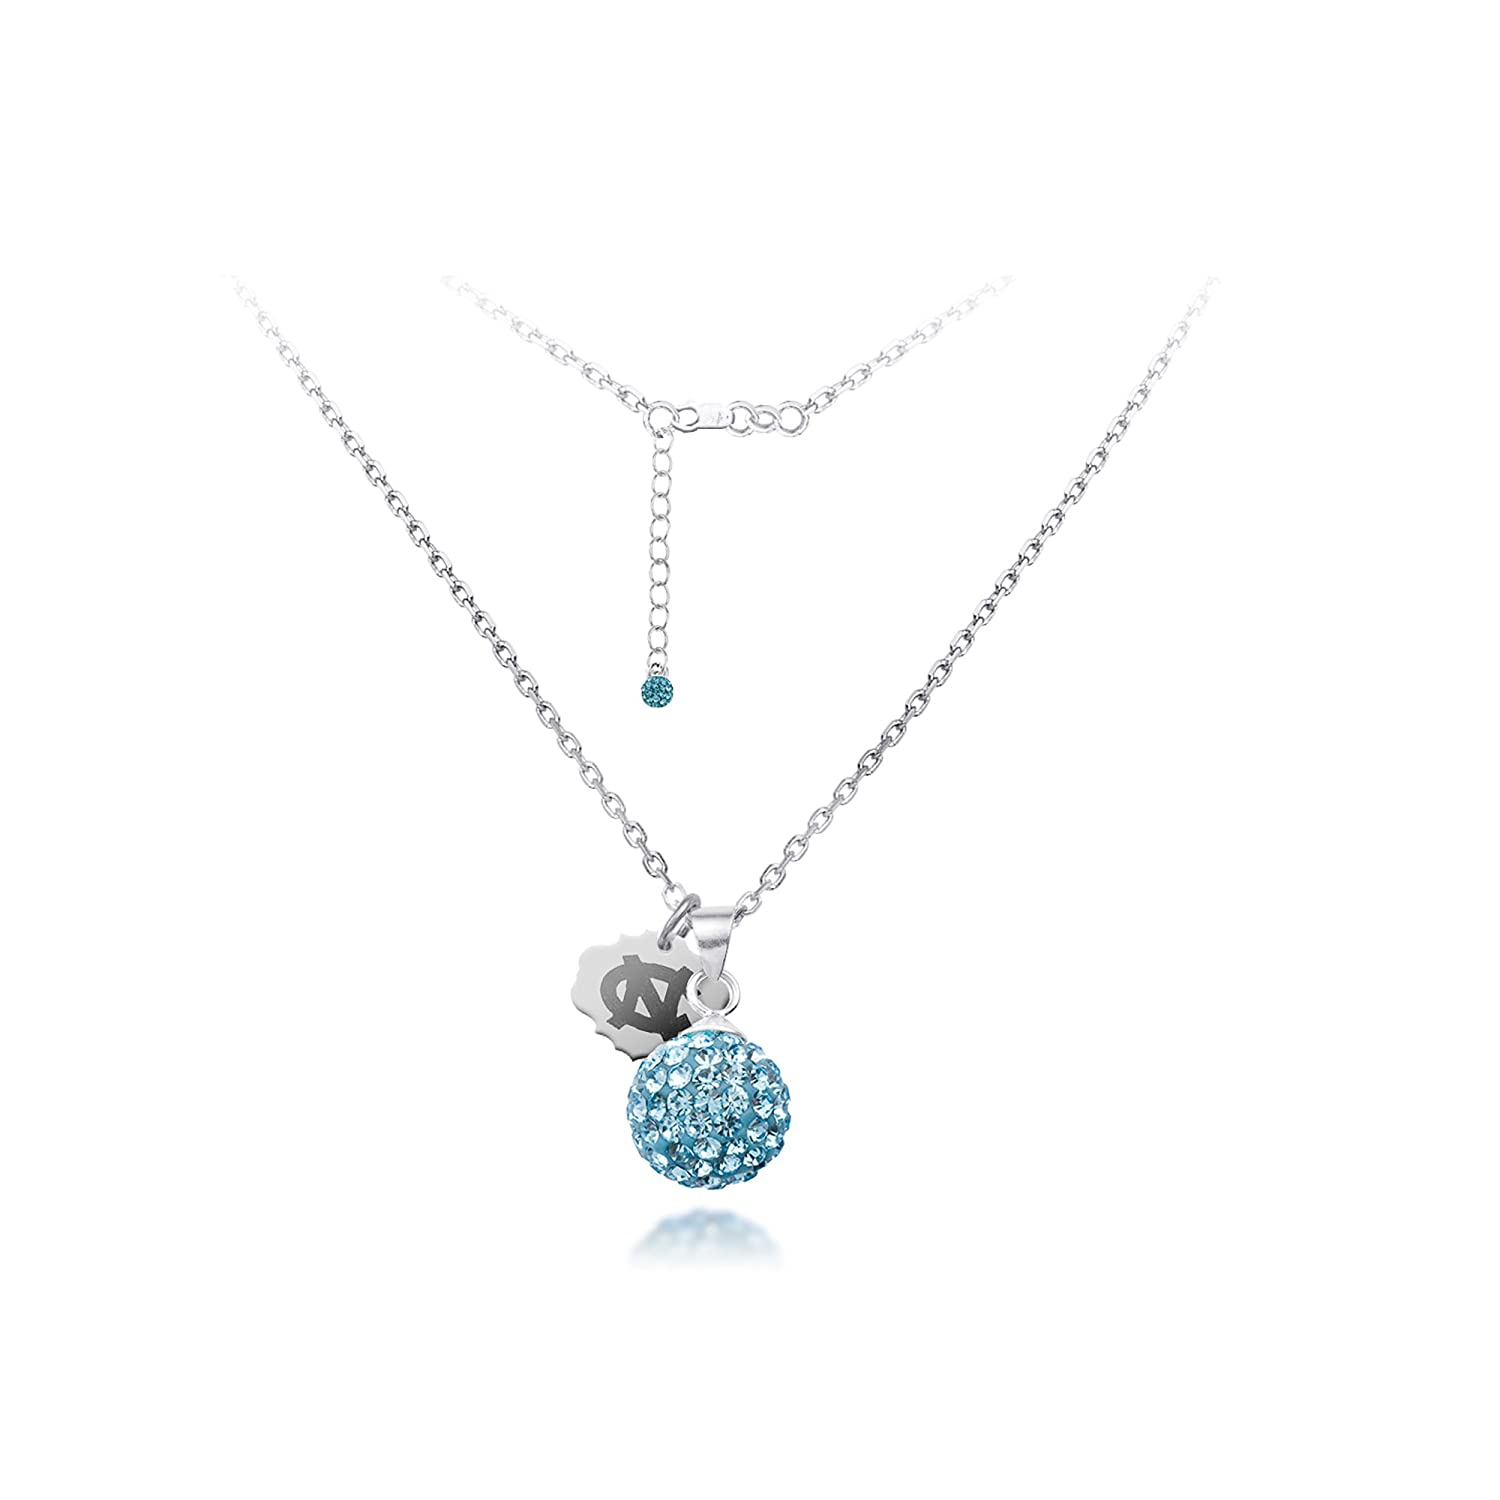 Spirit Sphere Neck//Univ of N Carolina DiamondJewelryNY Silver Pendant